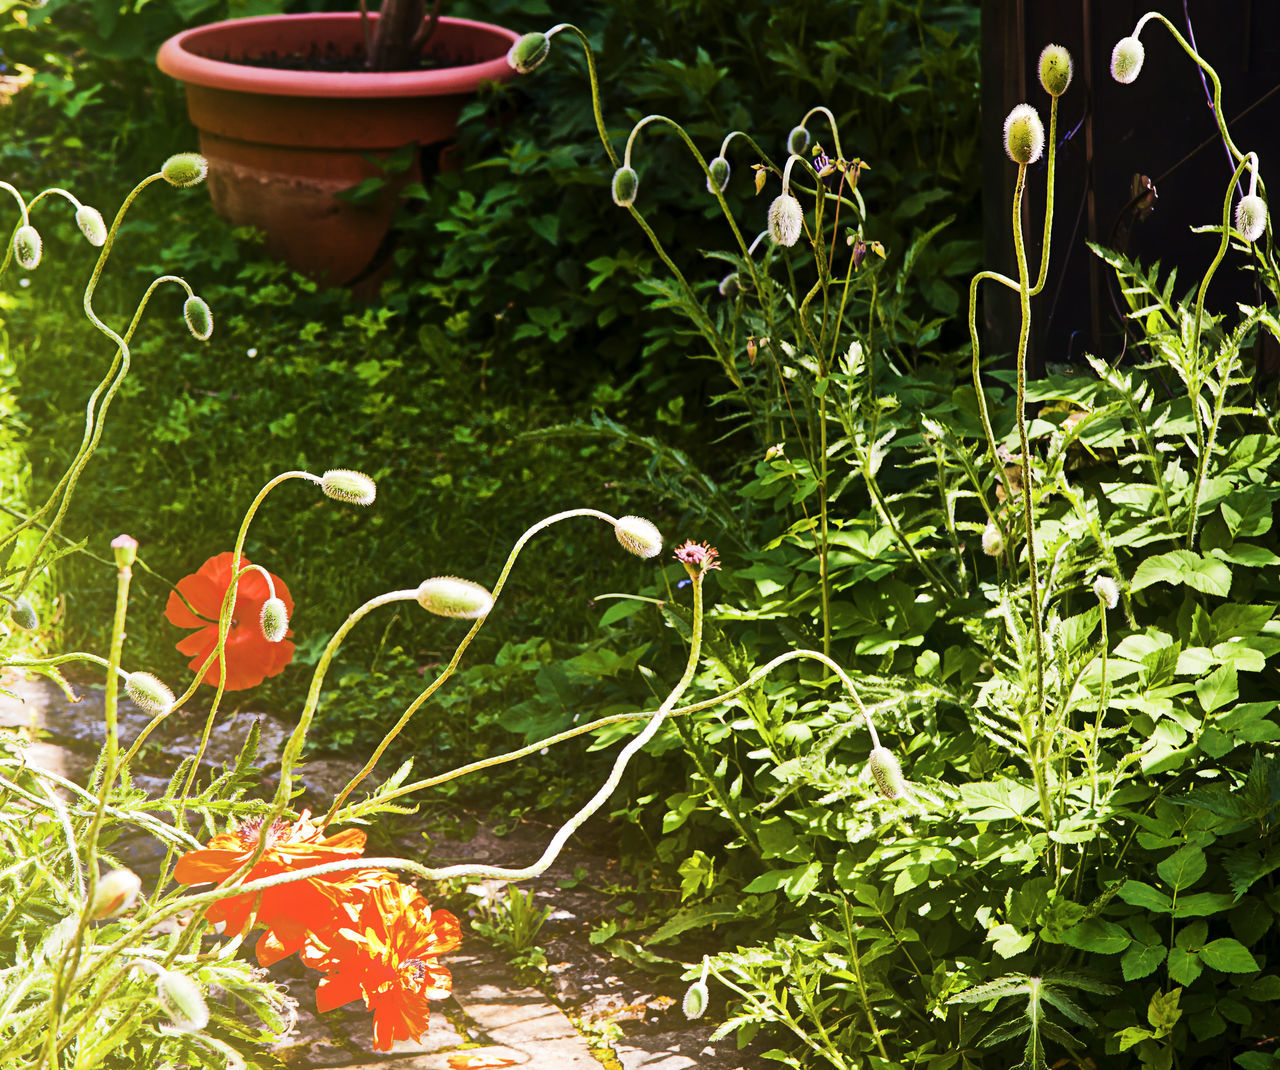 Poppy flowerbed in garden, backlight Beauty In Nature Close-up Day Flower Freshness Garden Garden Corner Grass Green Green Color Growth Leaf Nature No People Outdoors Plant Poppies  Red Season  Summer Vase